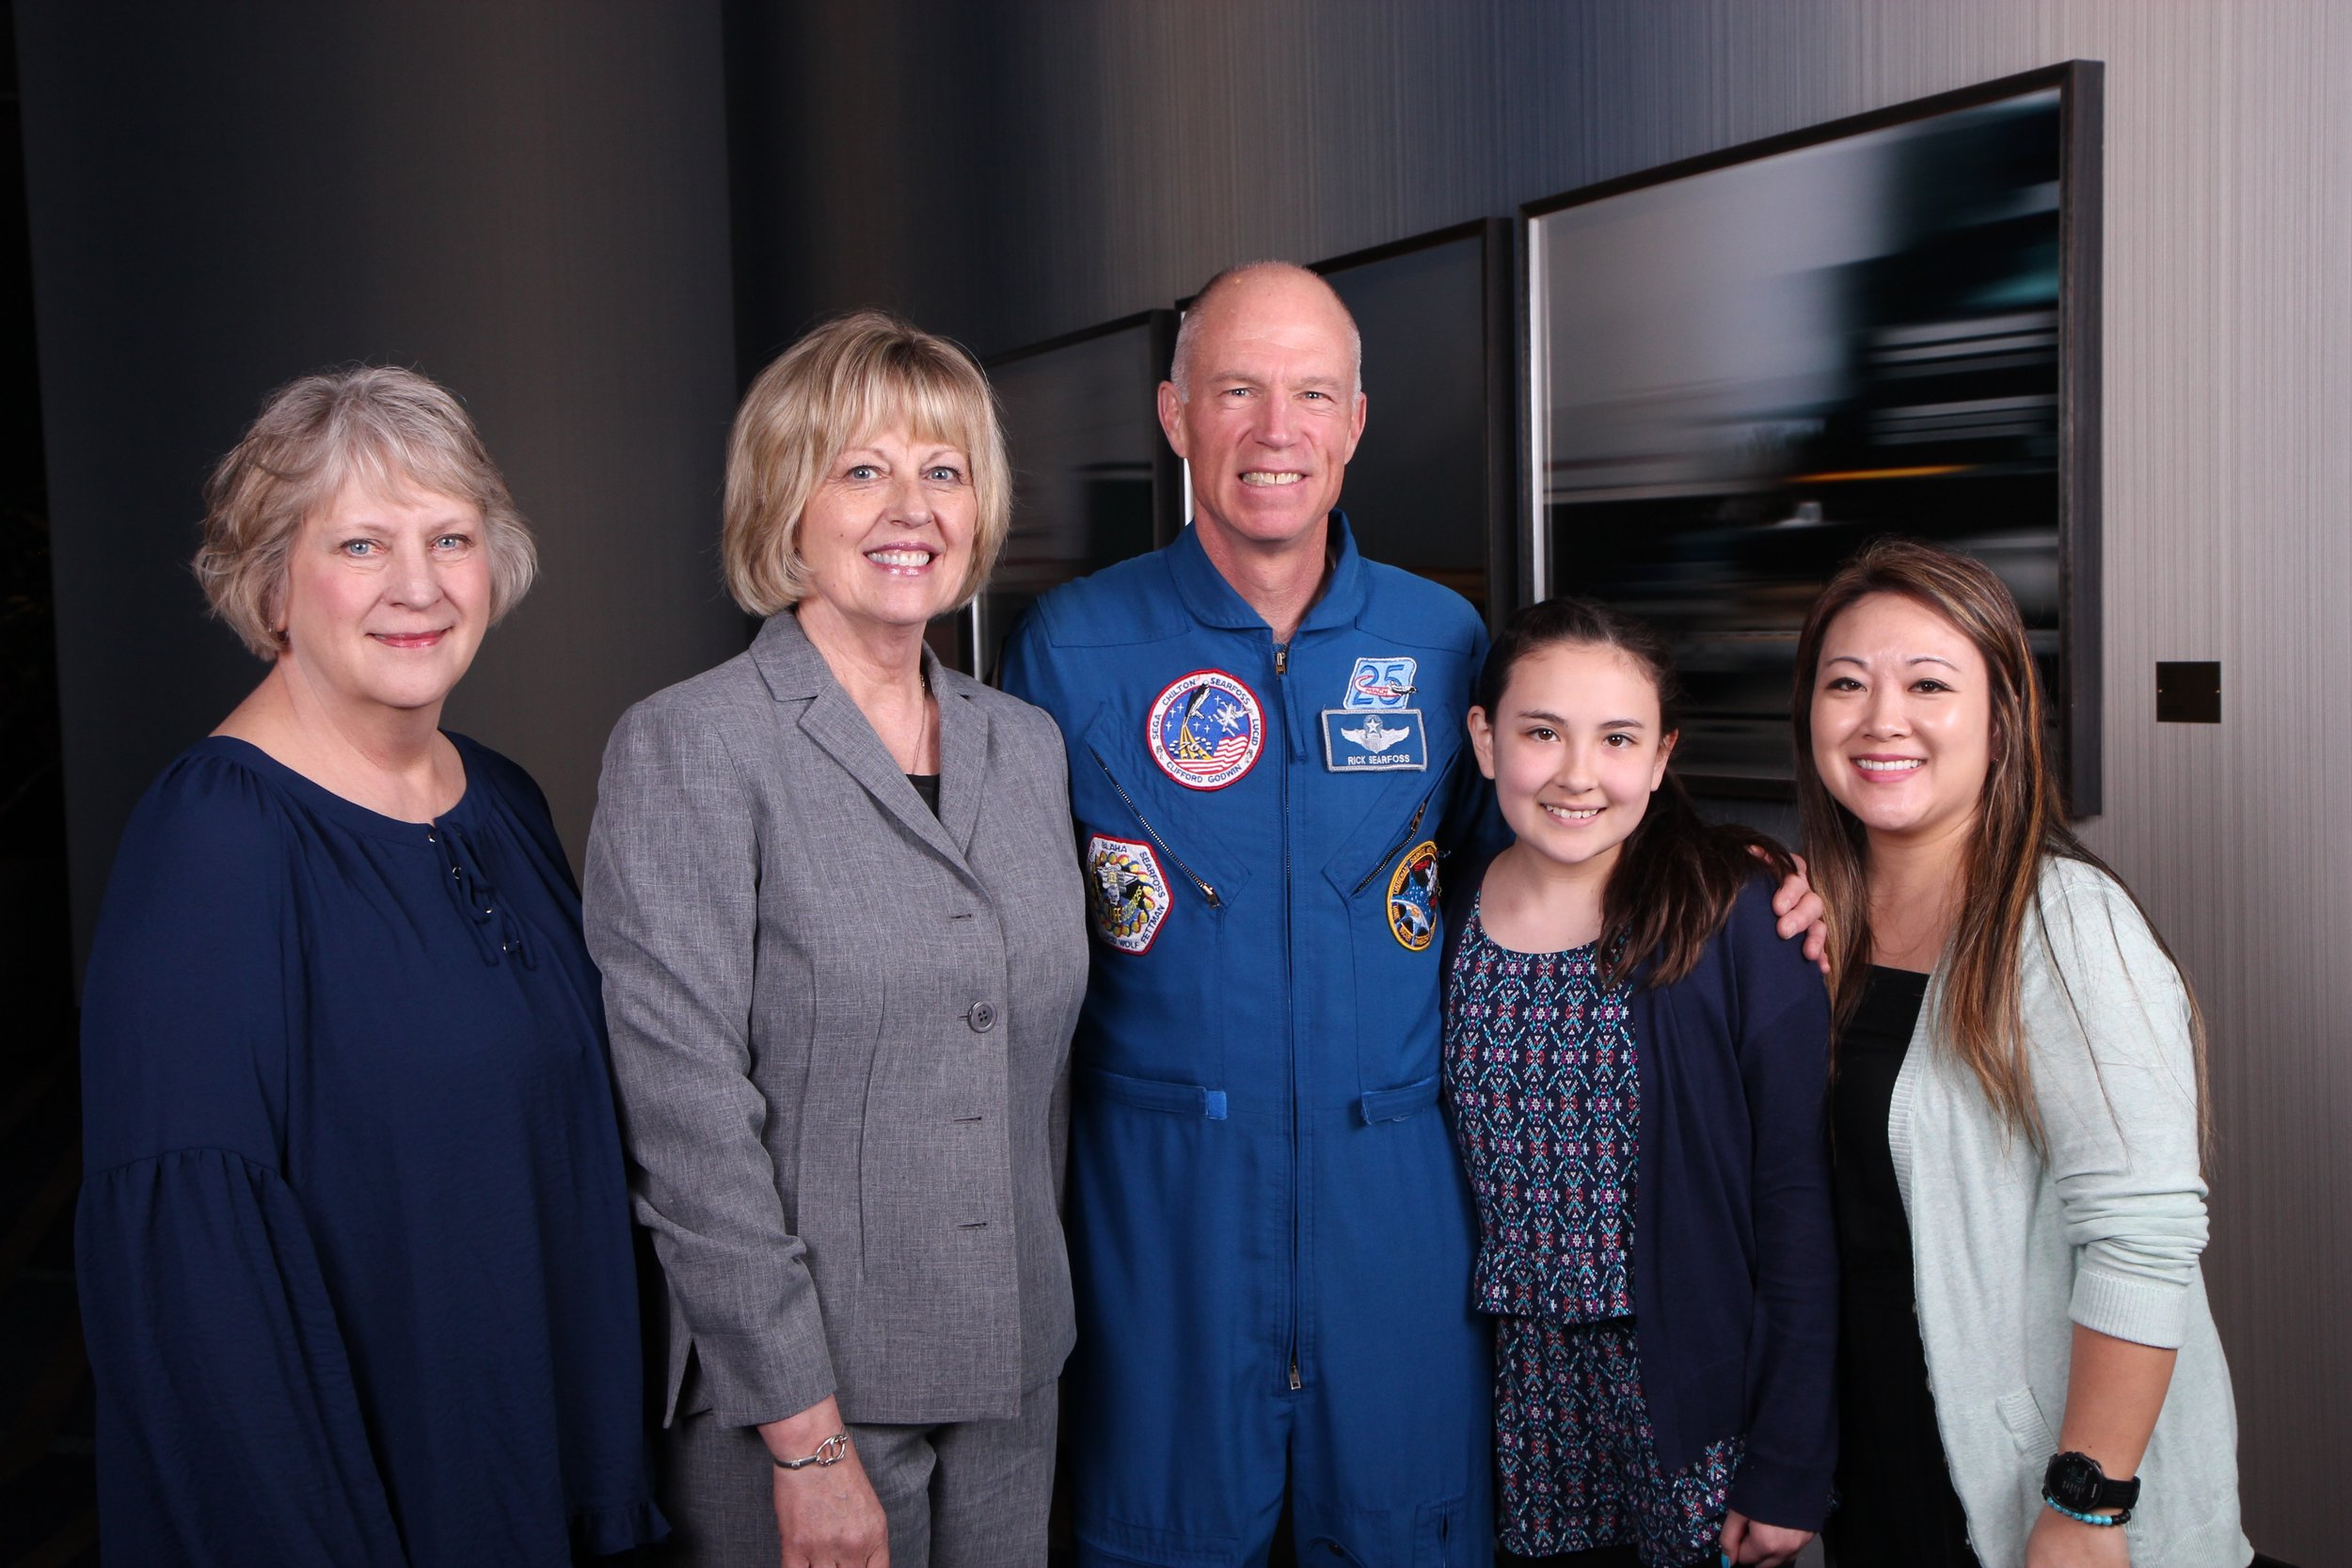 - IJO Conference Houston, Texas with guest speaker Astronaut Richard Searfoss